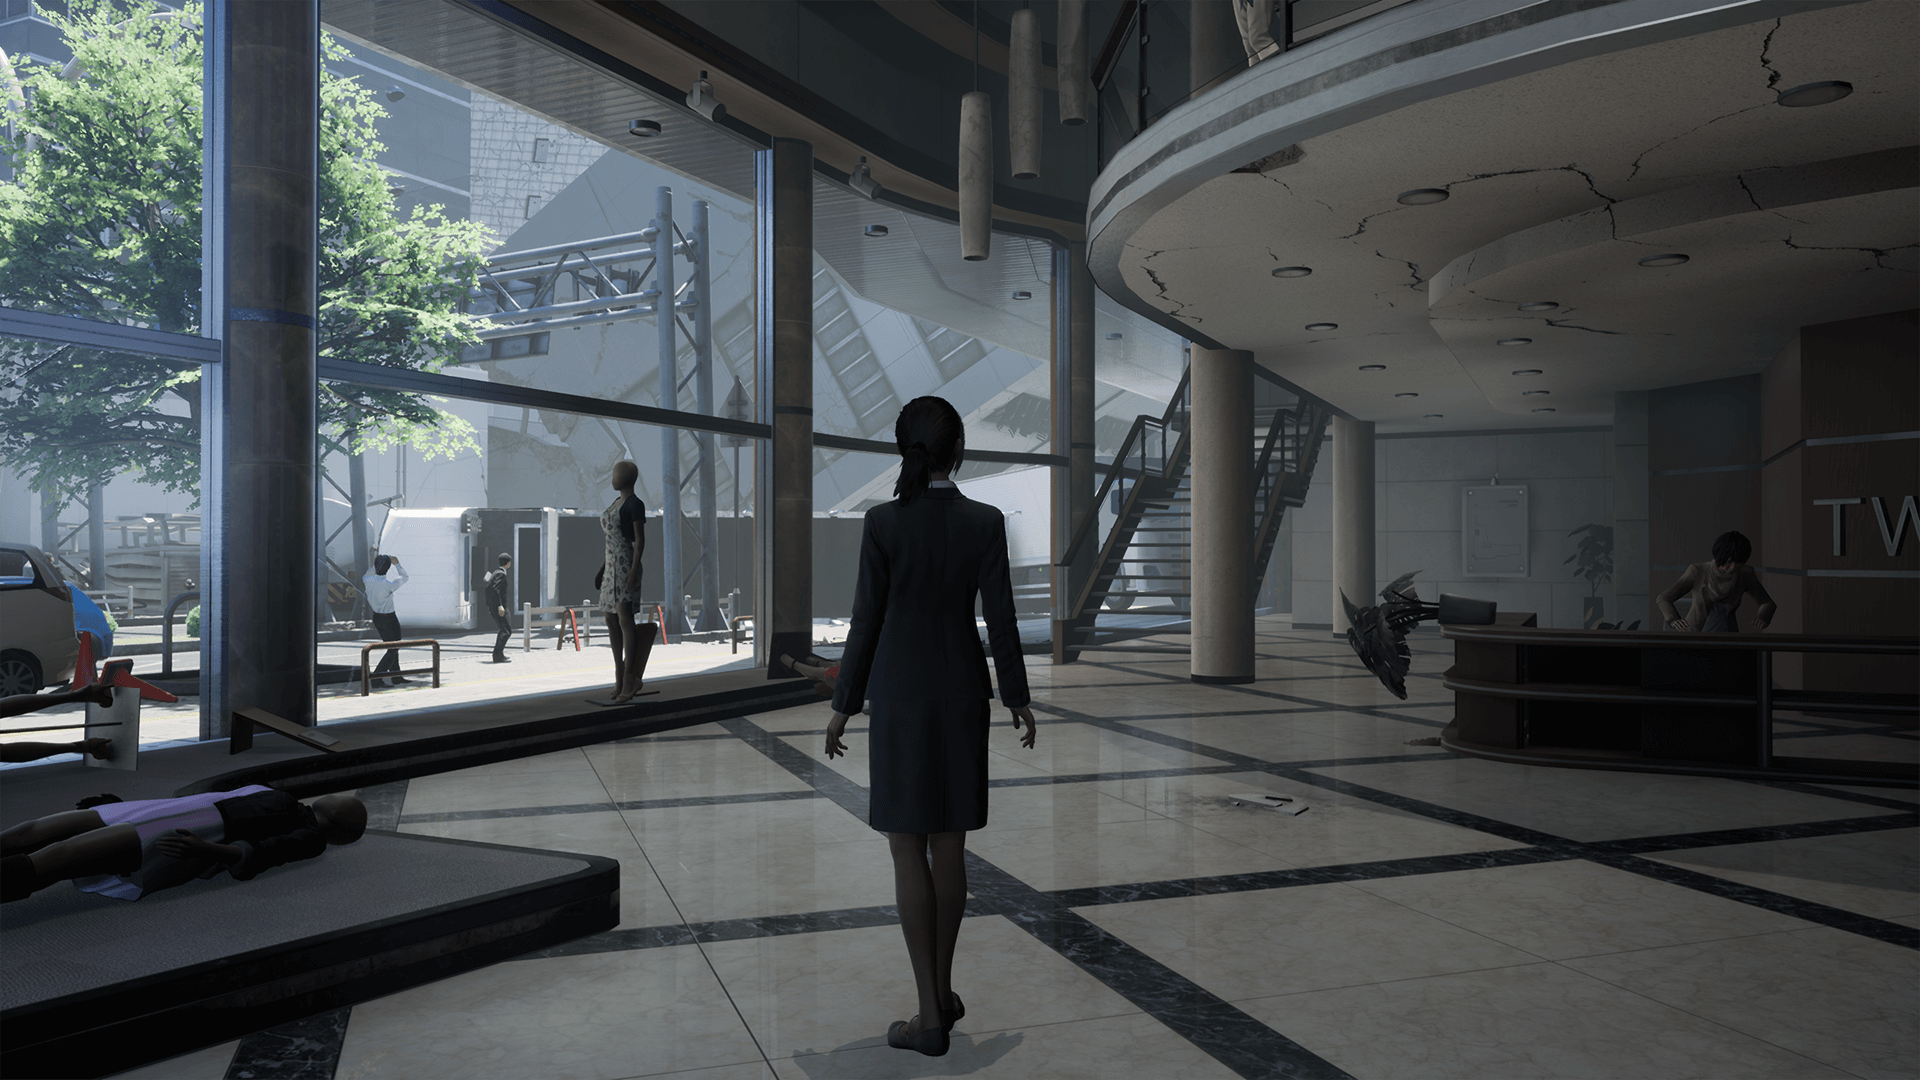 disaster report 4 - test 3